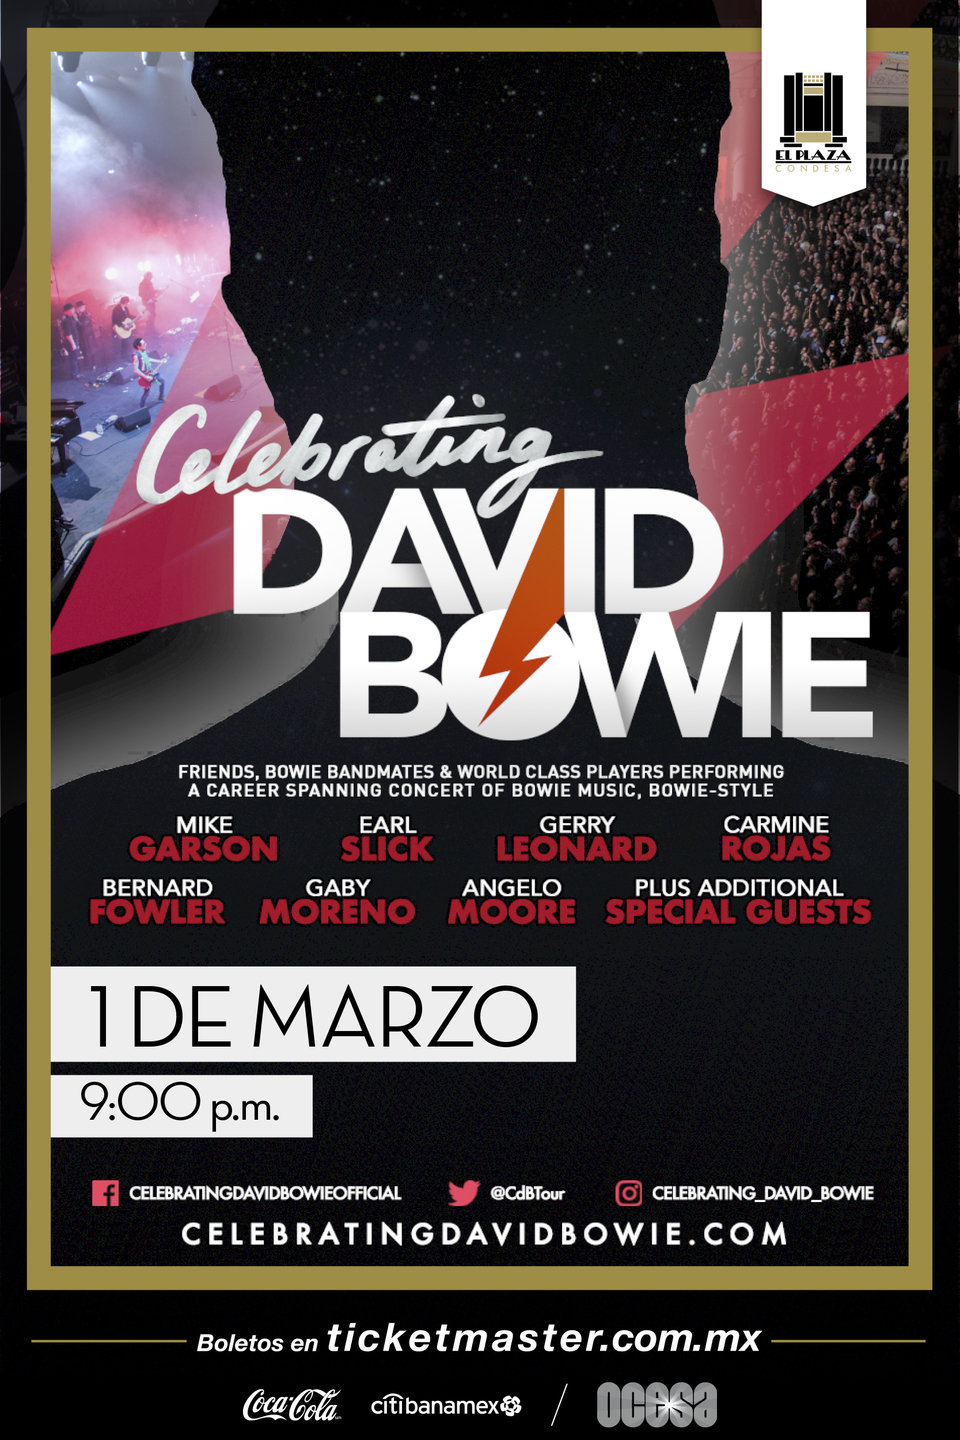 Celebrating David Bowie, arte oficial.